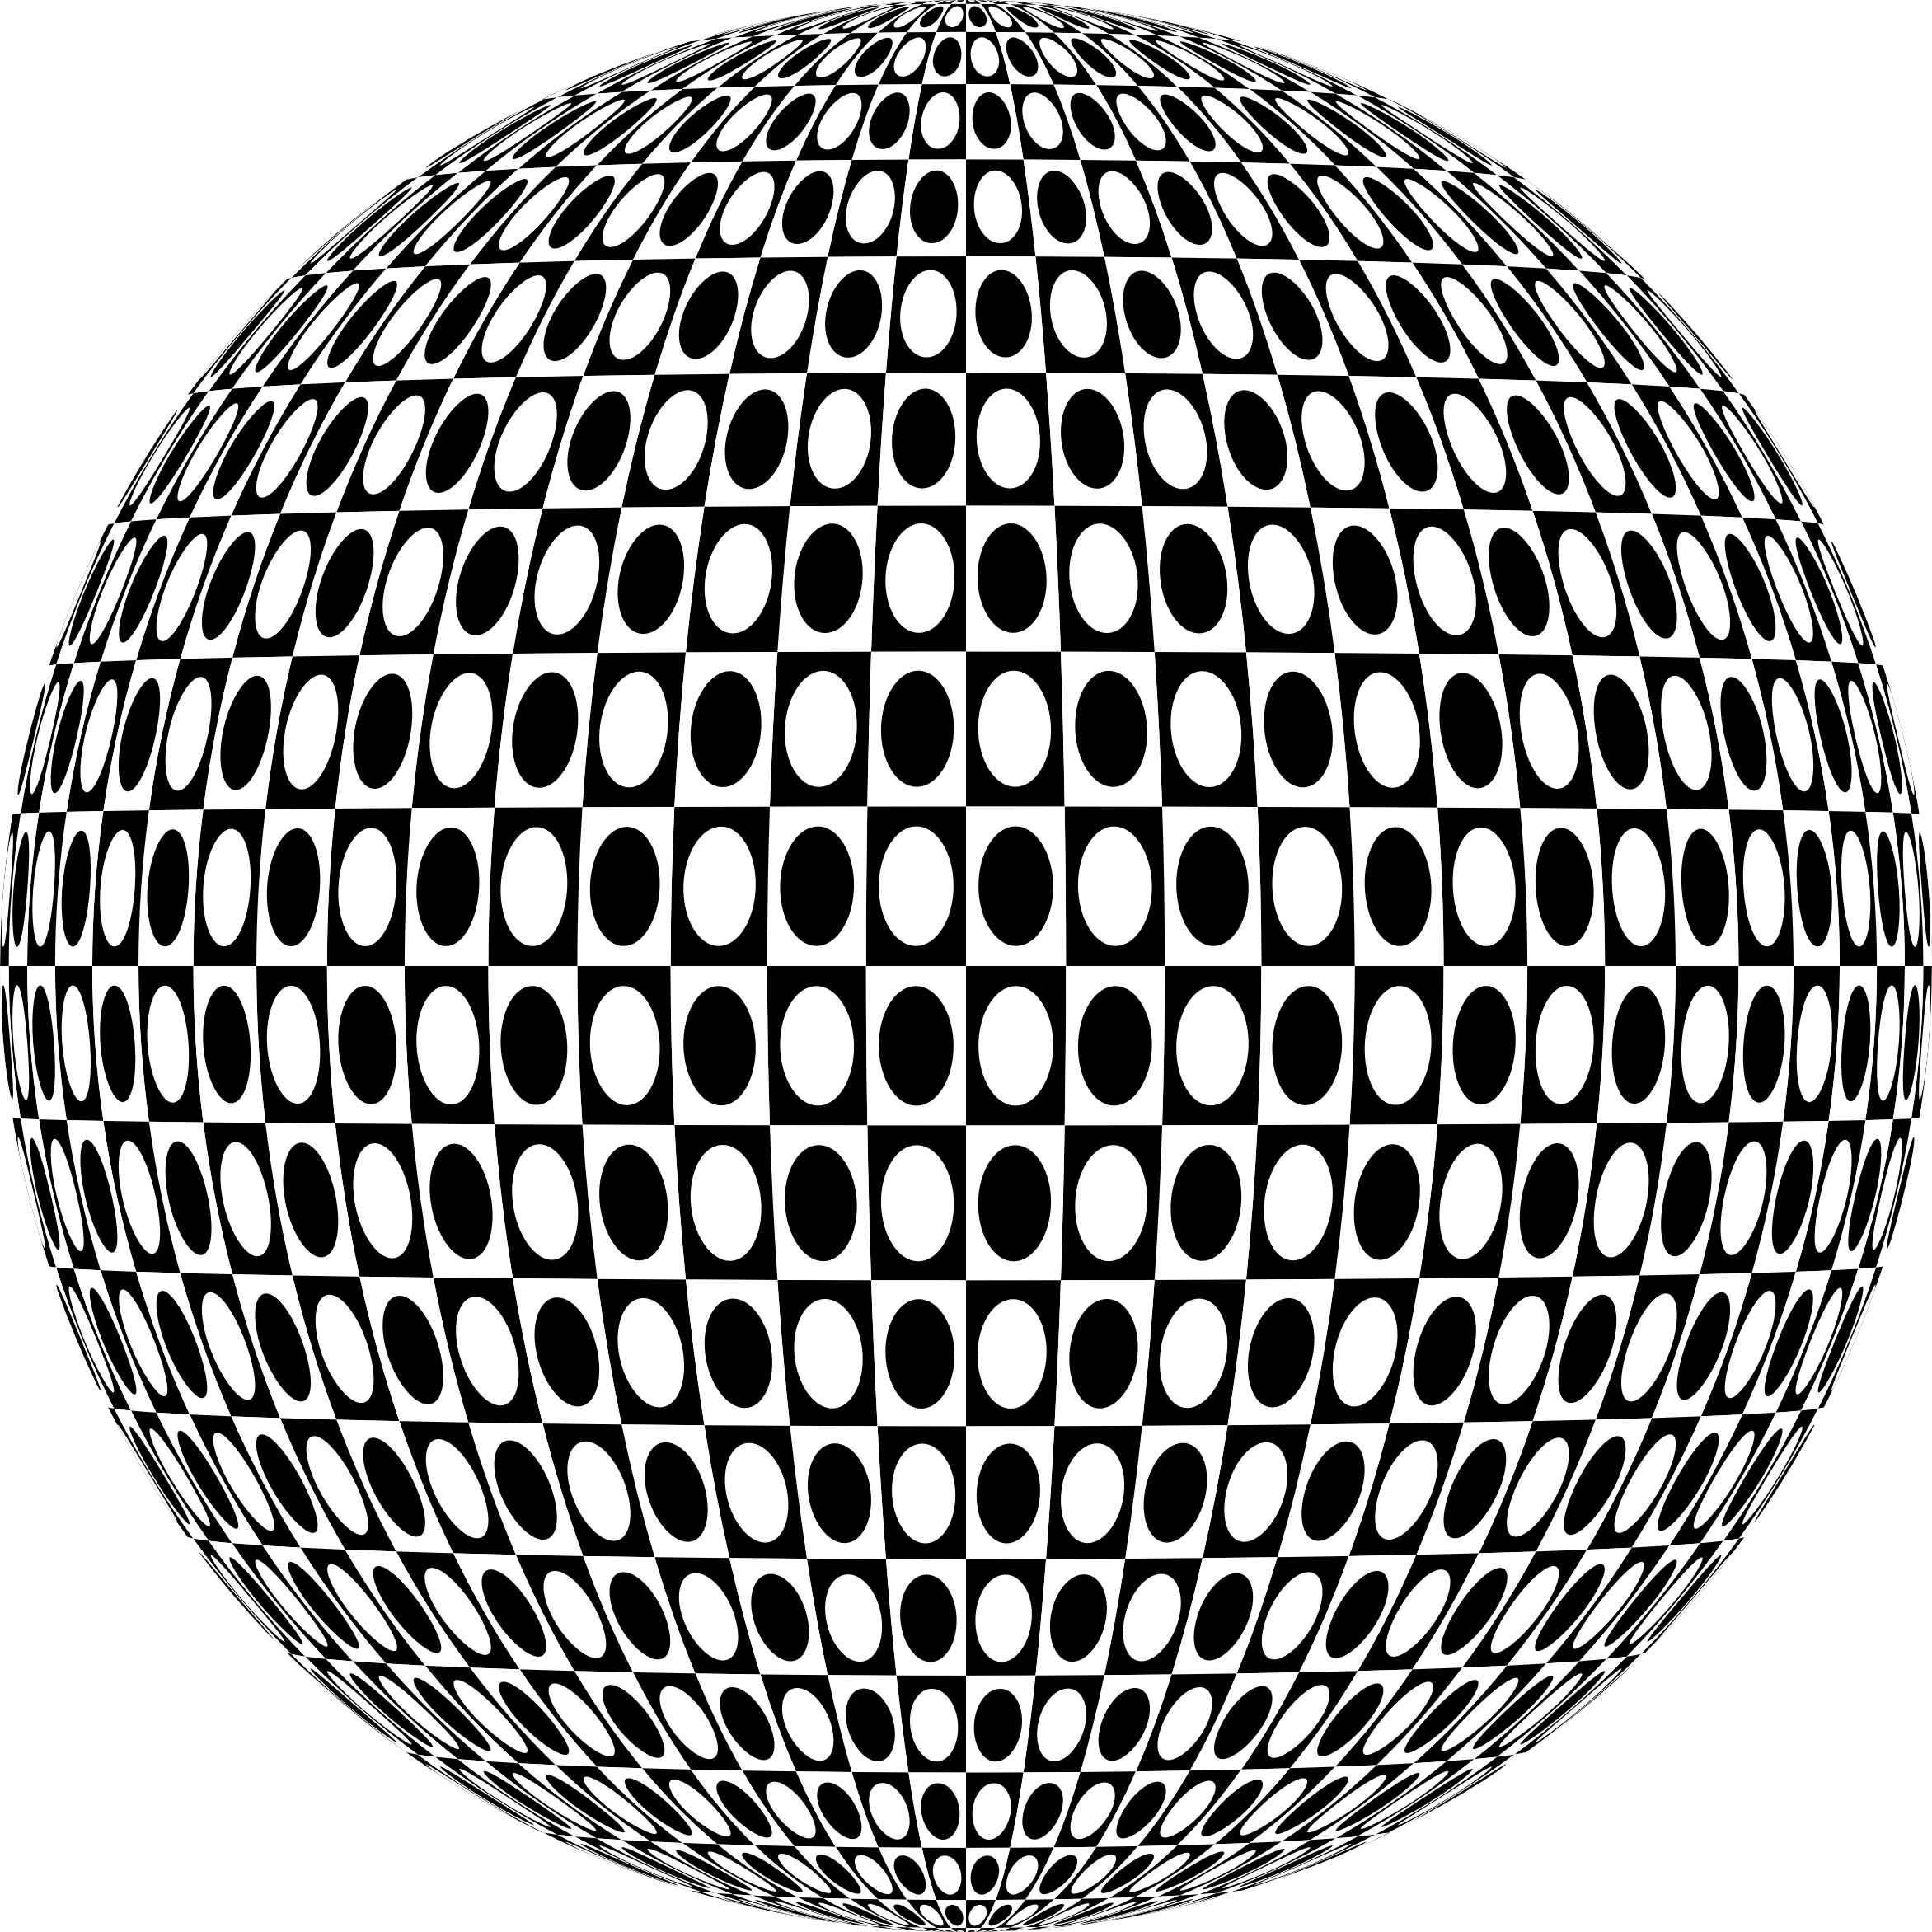 Checkered drawing abstract. Sphere icons png free